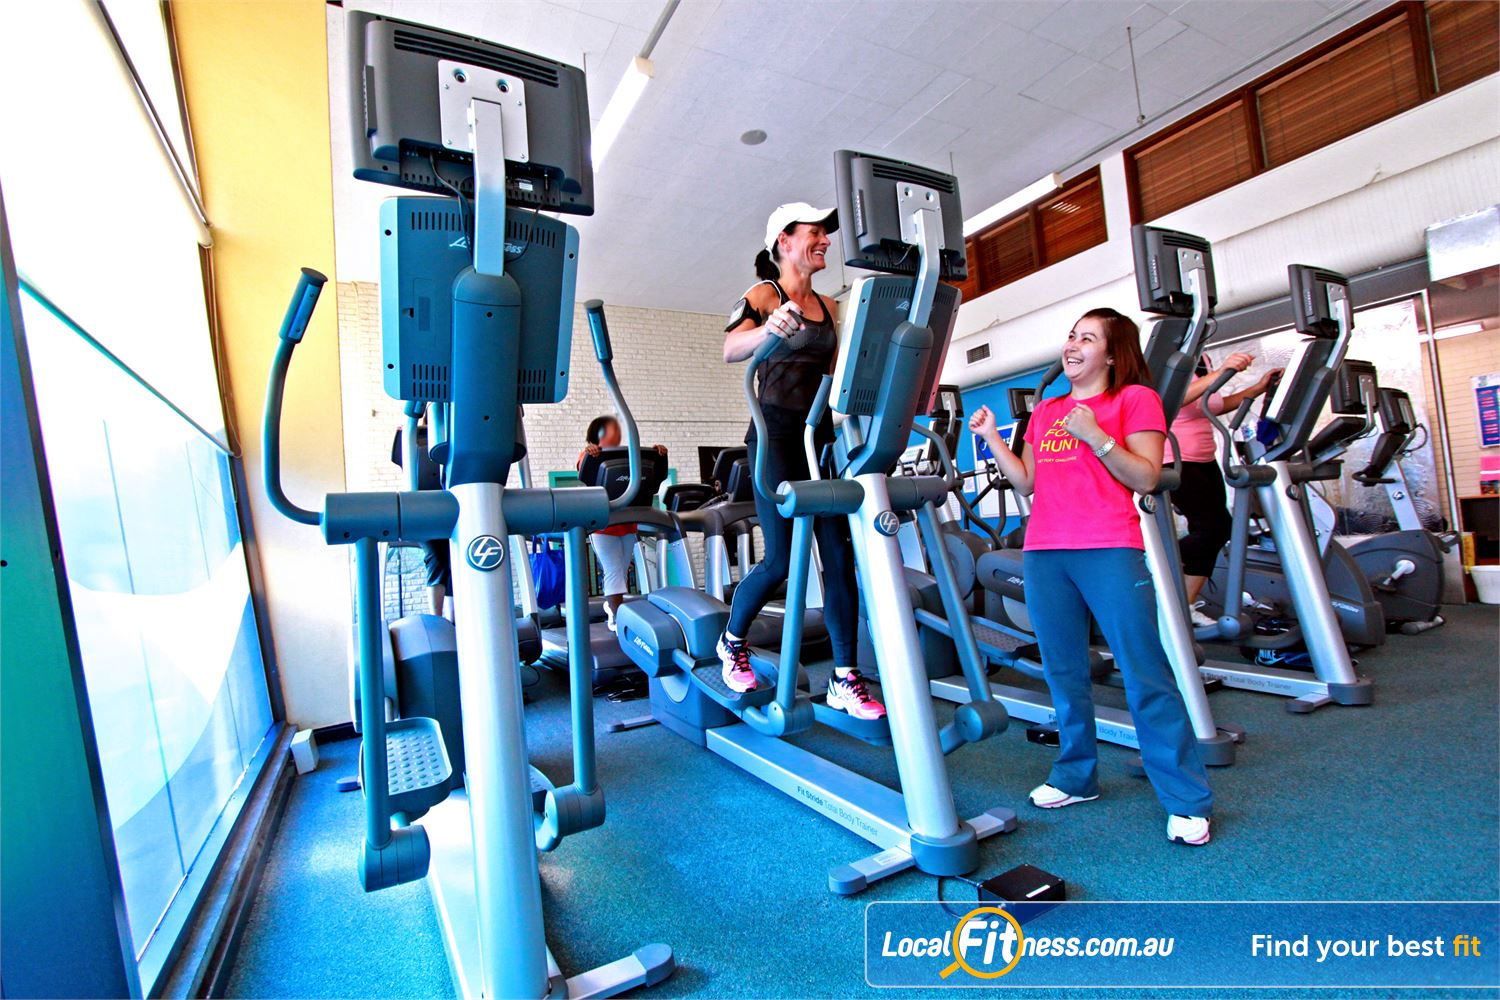 Fernwood Fitness Near Lurnea With Liverpool personal trainers you can lose weight fast with our energetic cardio boxing workouts.